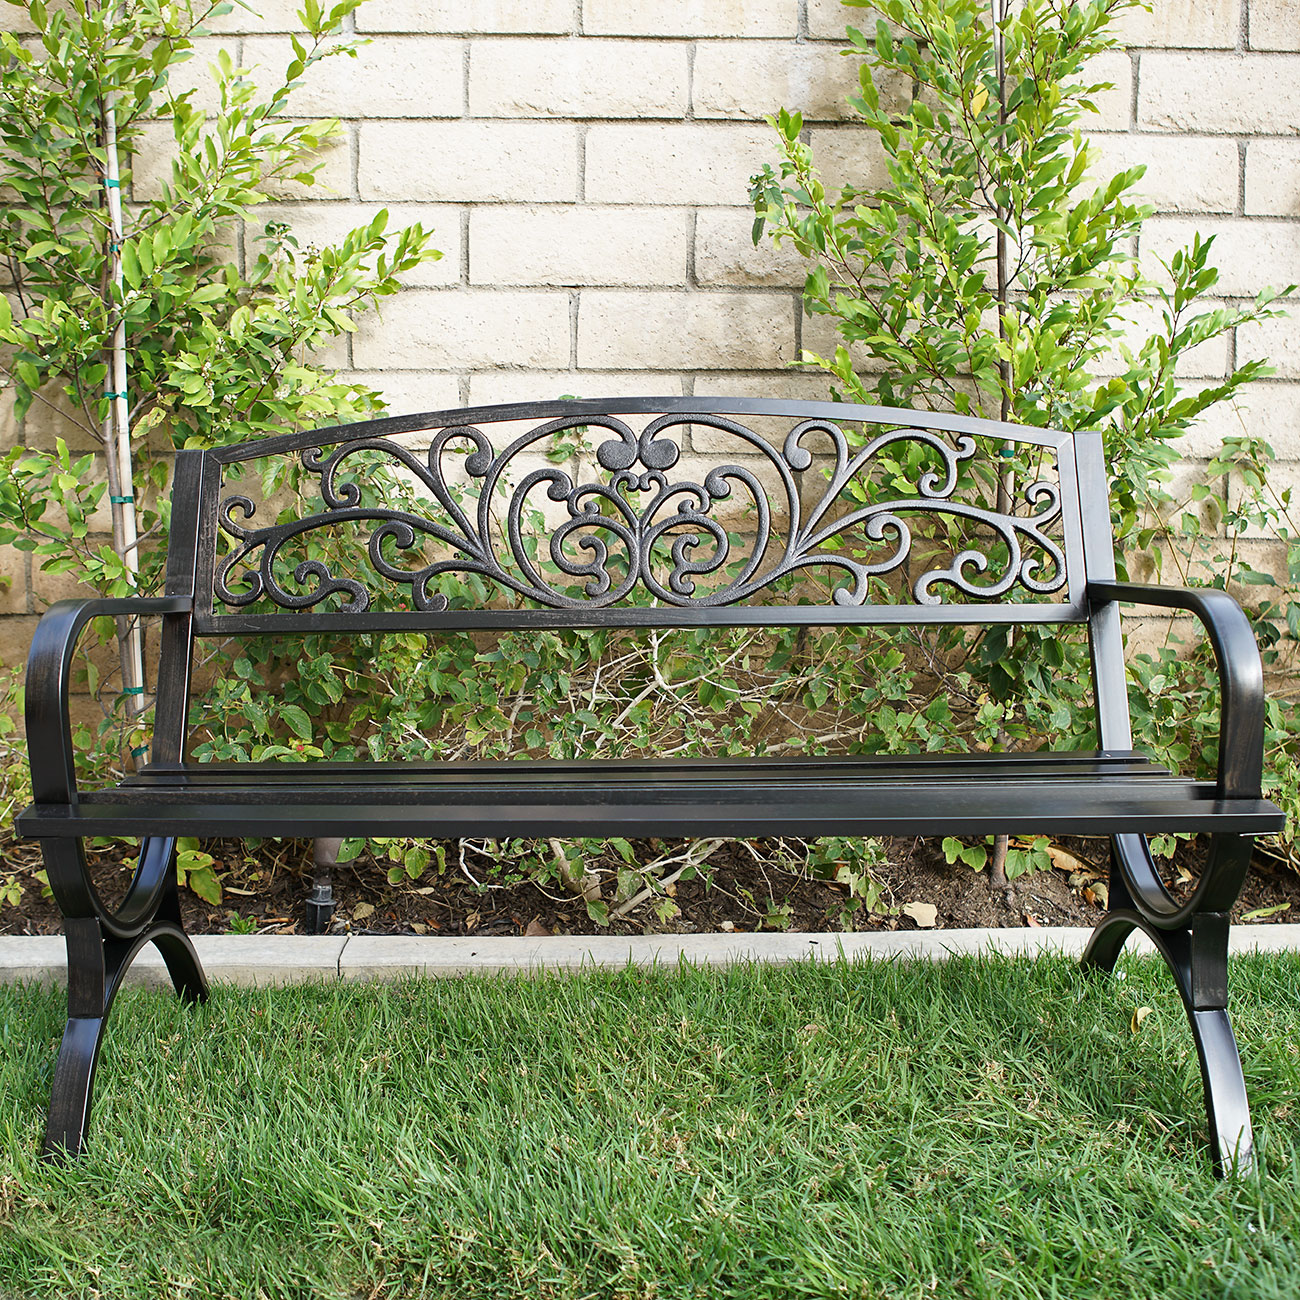 Outdoor bench patio metal garden furniture seat bronze ebay Garden benches metal